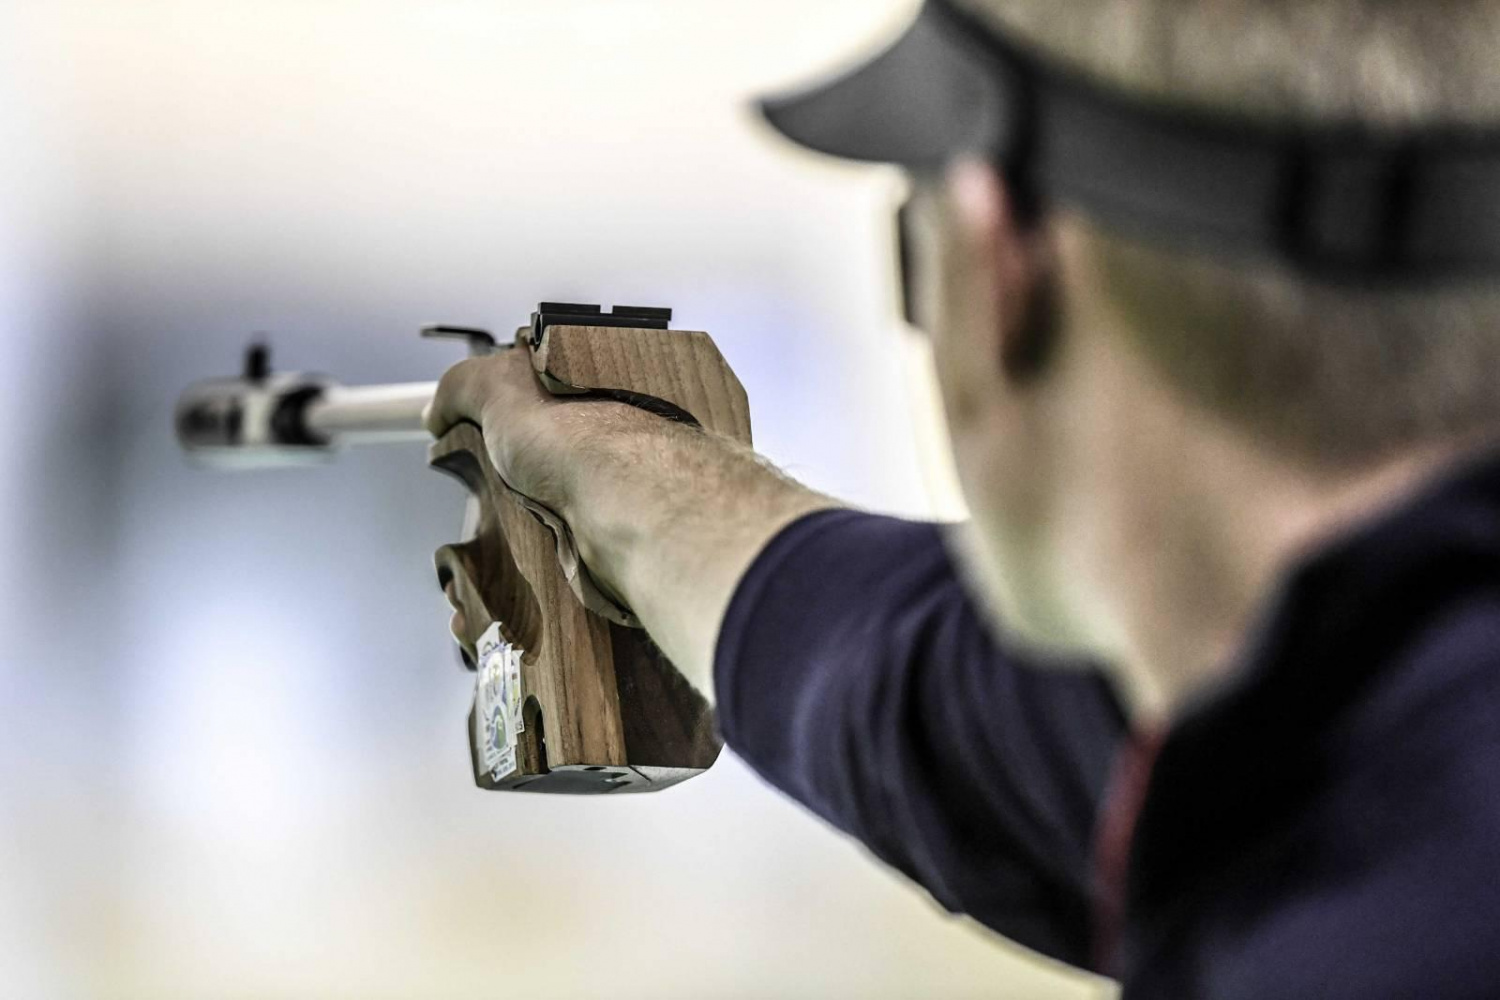 Olympic Games Pistol Rapid Fire Competitor